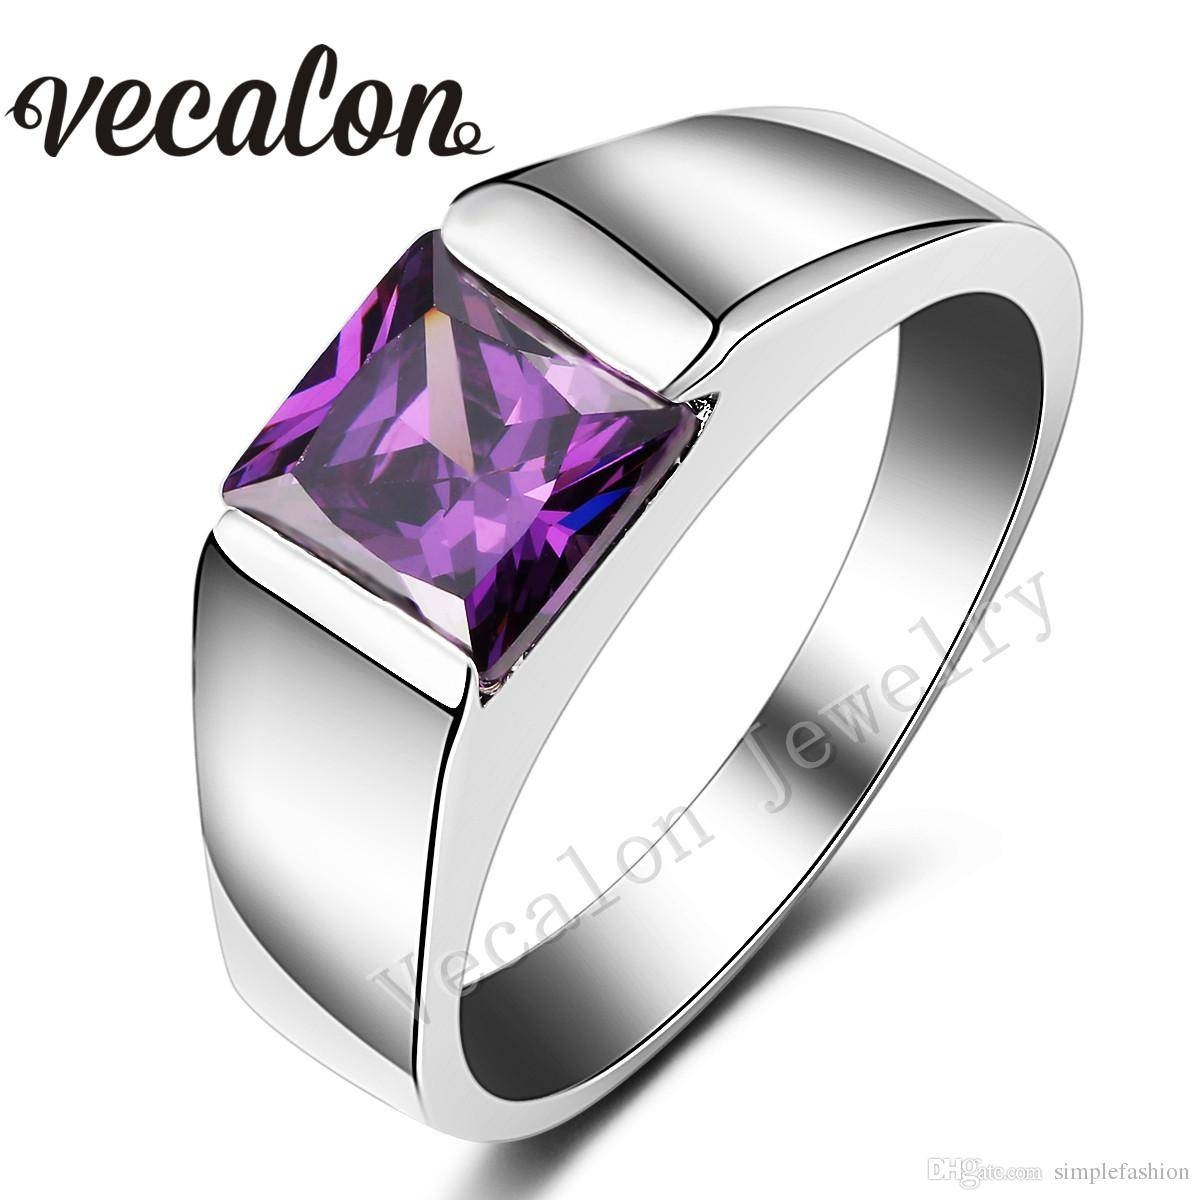 Vecalon Male Jewelry Princess Cut 4Ct Amethyst Cz 925 Sterling Intended For Wedding Rings With Amethyst (Gallery 15 of 15)